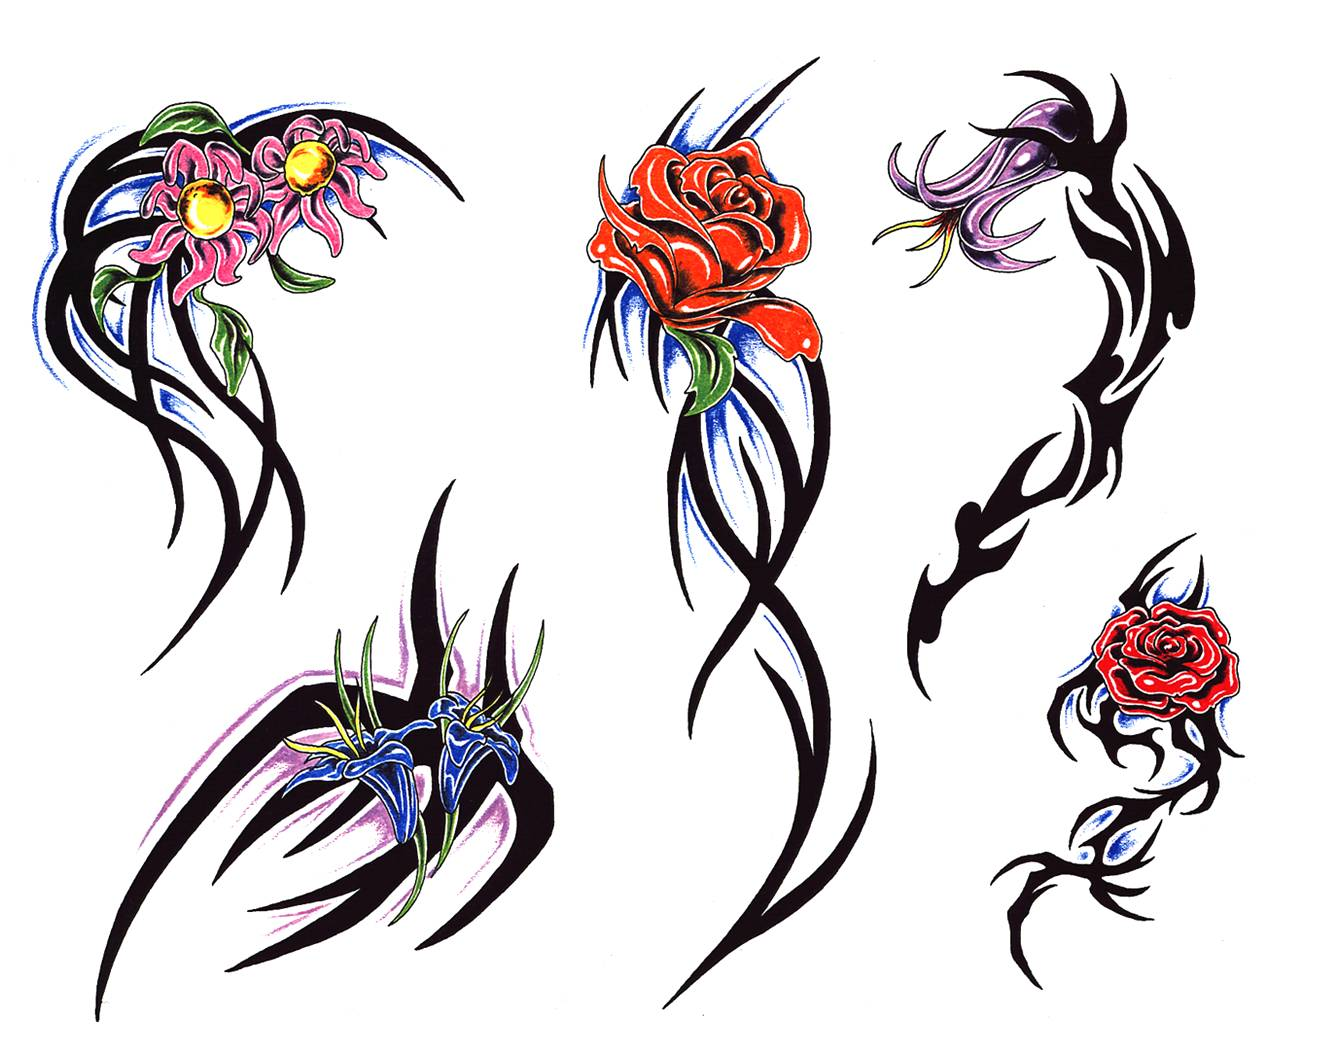 Free Printable Tattoo Designs: Trend Tattoo Styles: January 2013